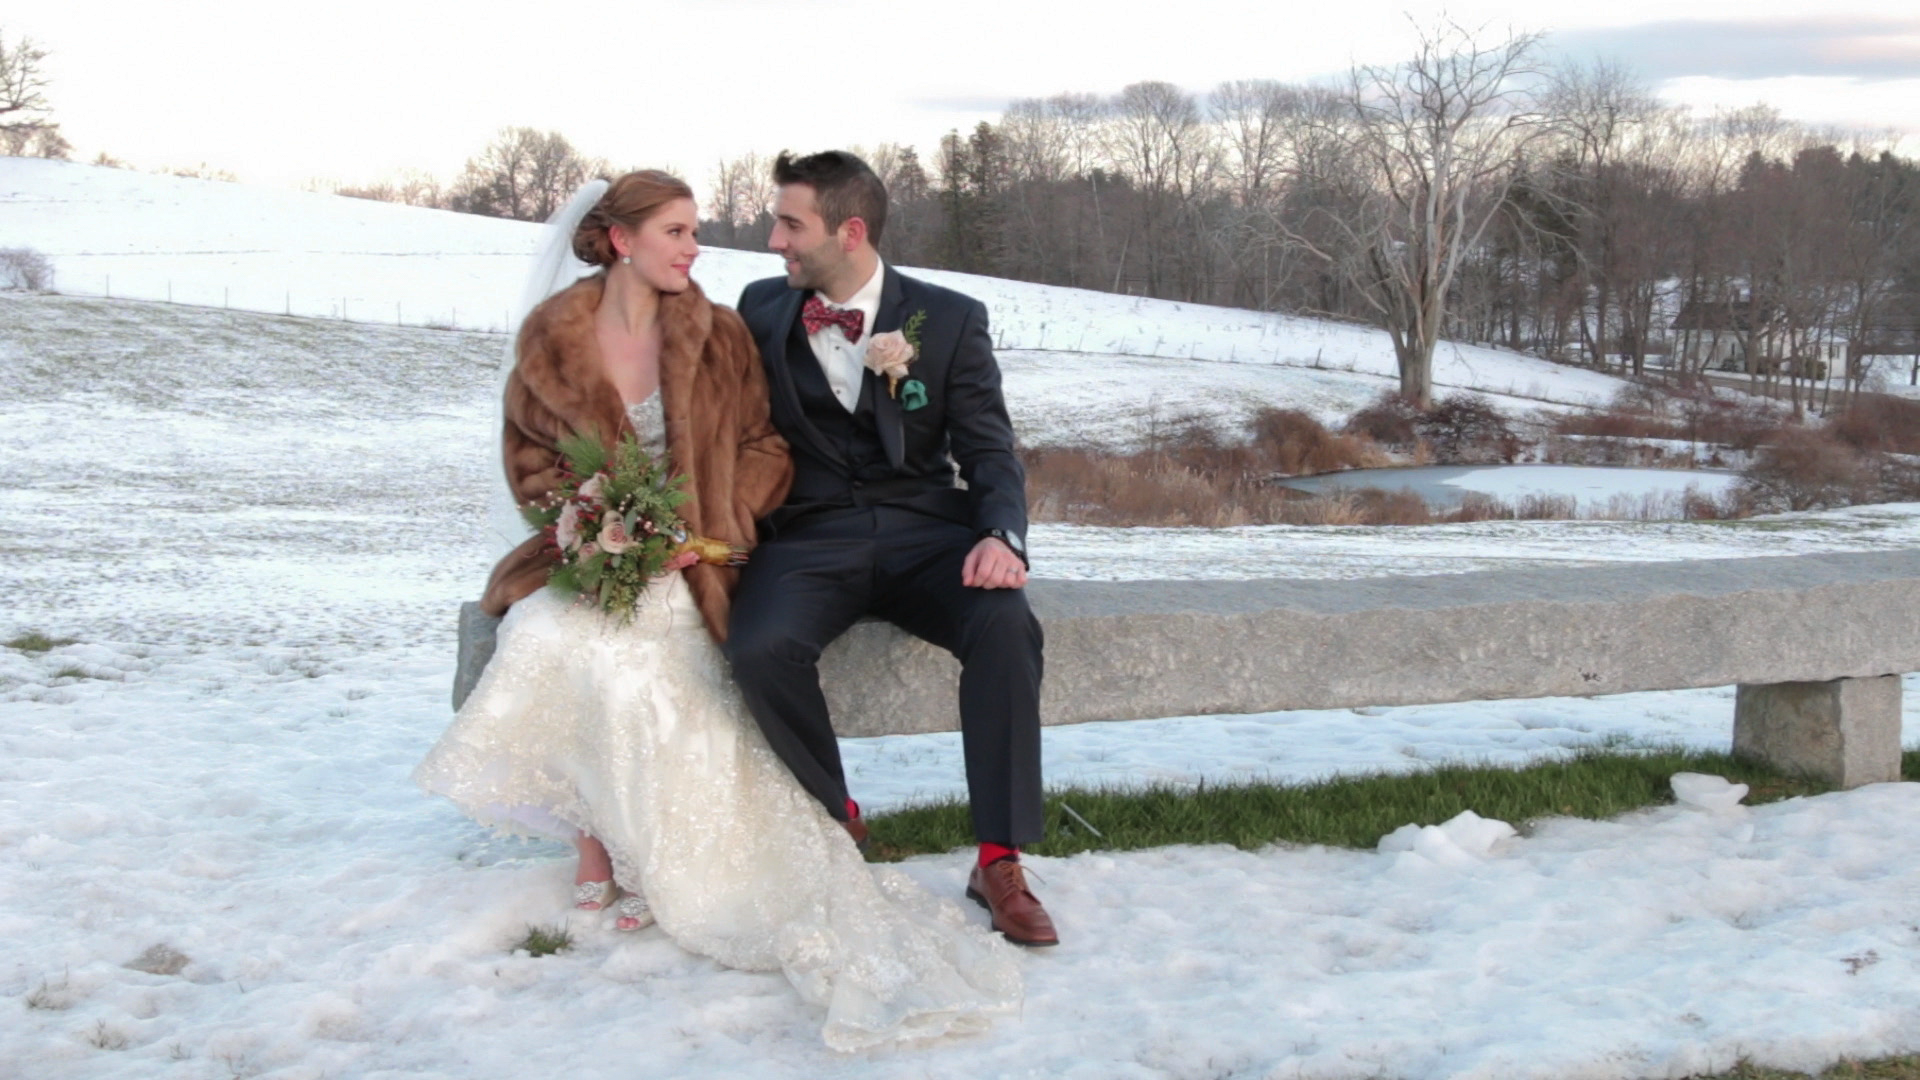 Nh images photography video blog ma wedding videographer for Wedding videographers in ma